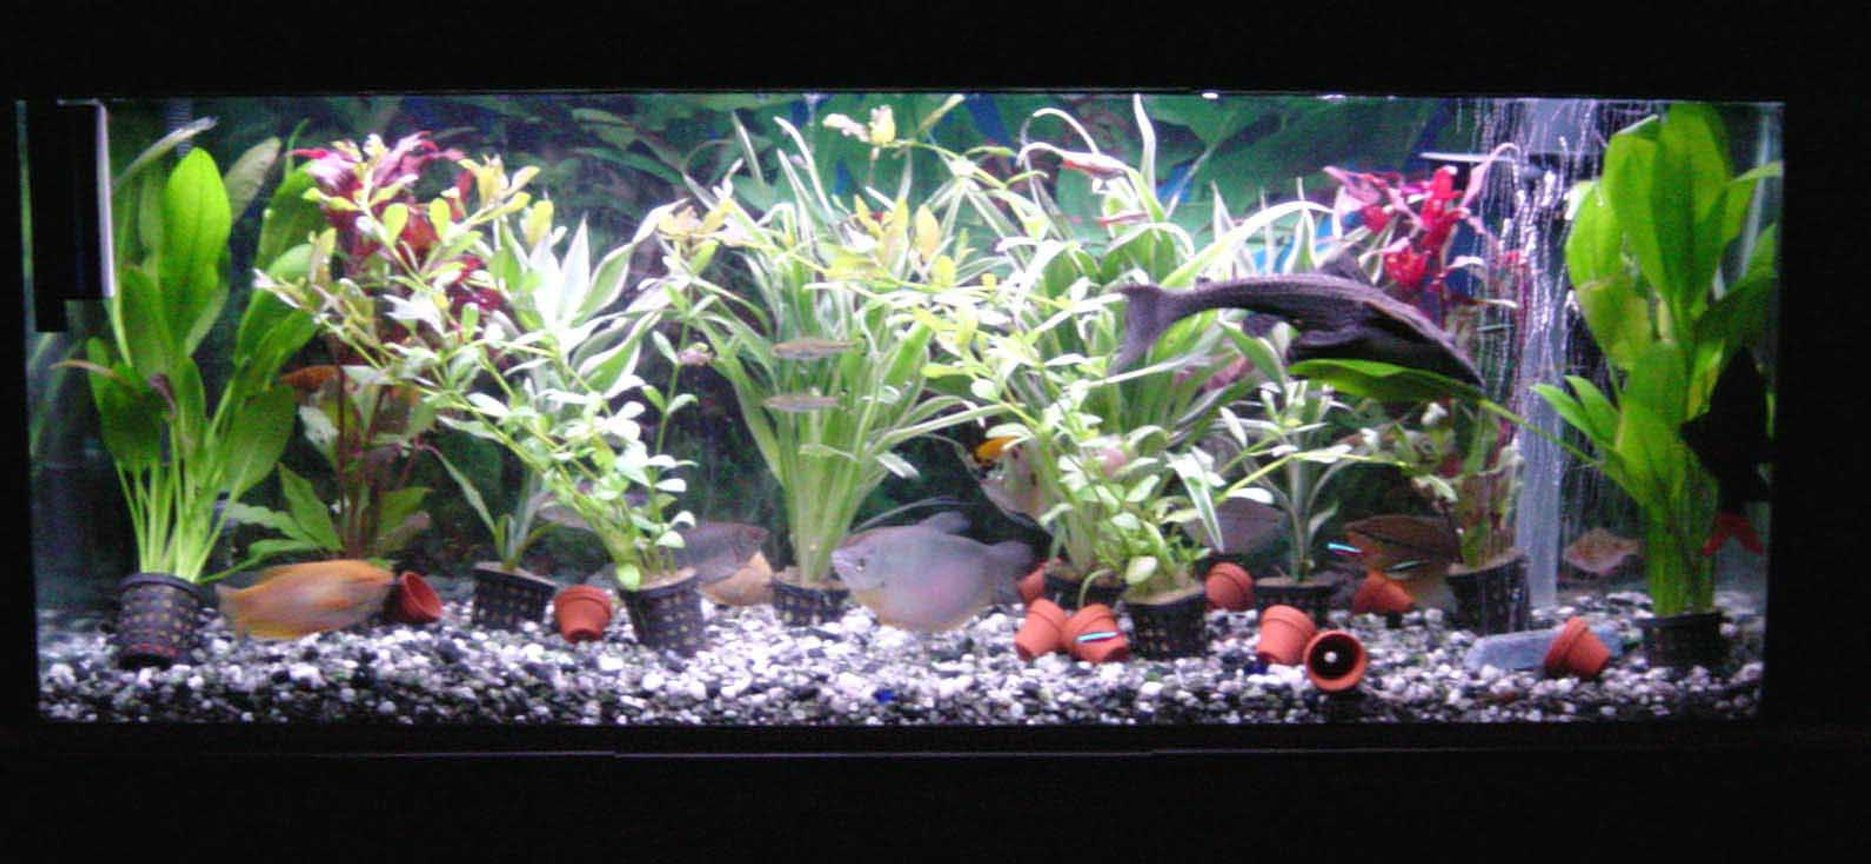 "30 gallons planted tank (mostly live plants and fish) - it is a jewel 120 with 10 plants, an under gravel filter with powerhead for water flow. fluval 304 and air pump for air birck. has about 40 fish, sissor tails, moonlight garami, black neons, cardinals , 9"" plec, a yellow and white angel and alot more. t8 lighting Aqua glow single 30"" tube"